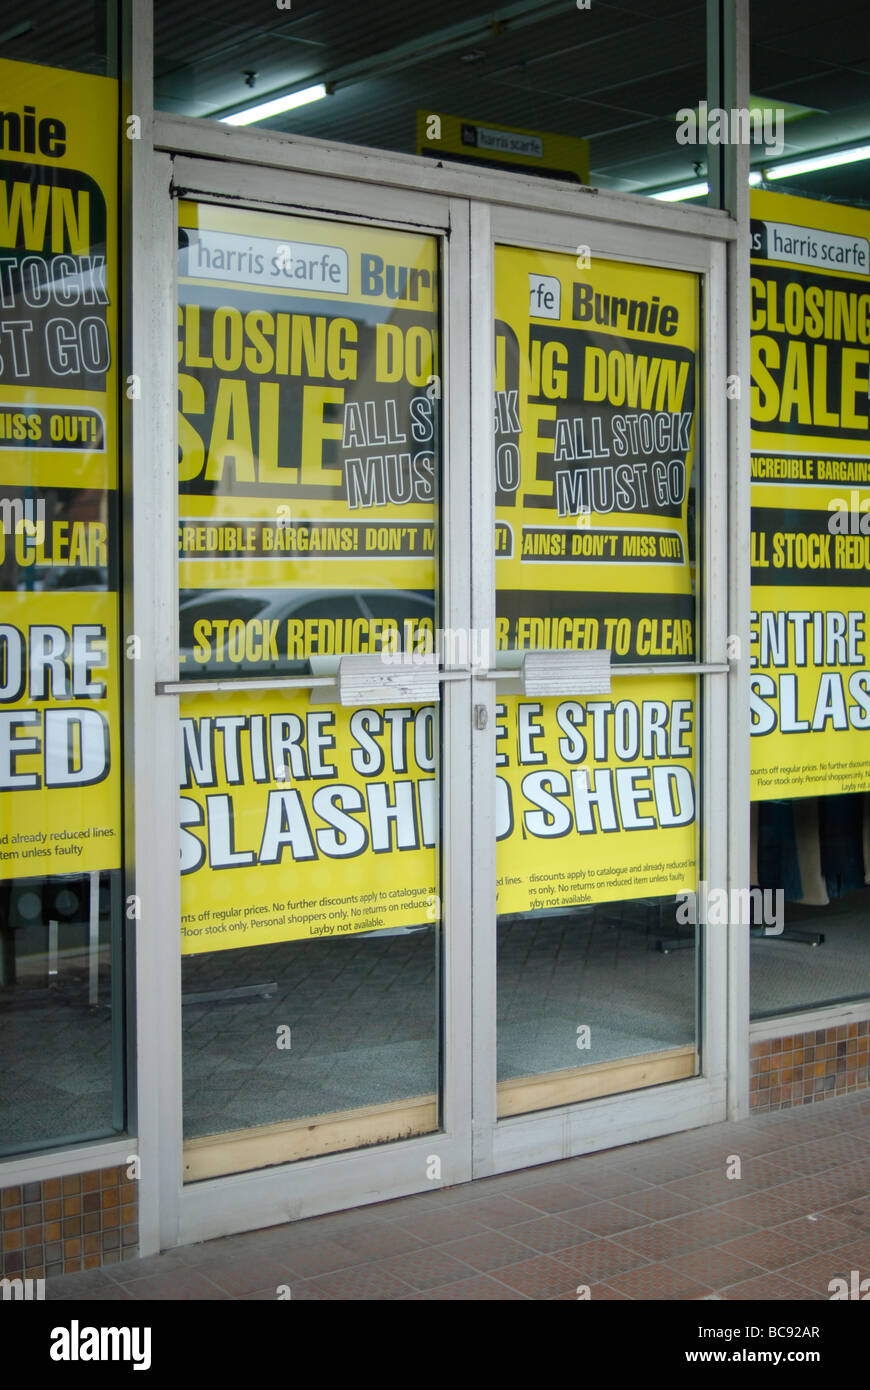 Fire sale of shop stock as a department store closes down - Stock Image